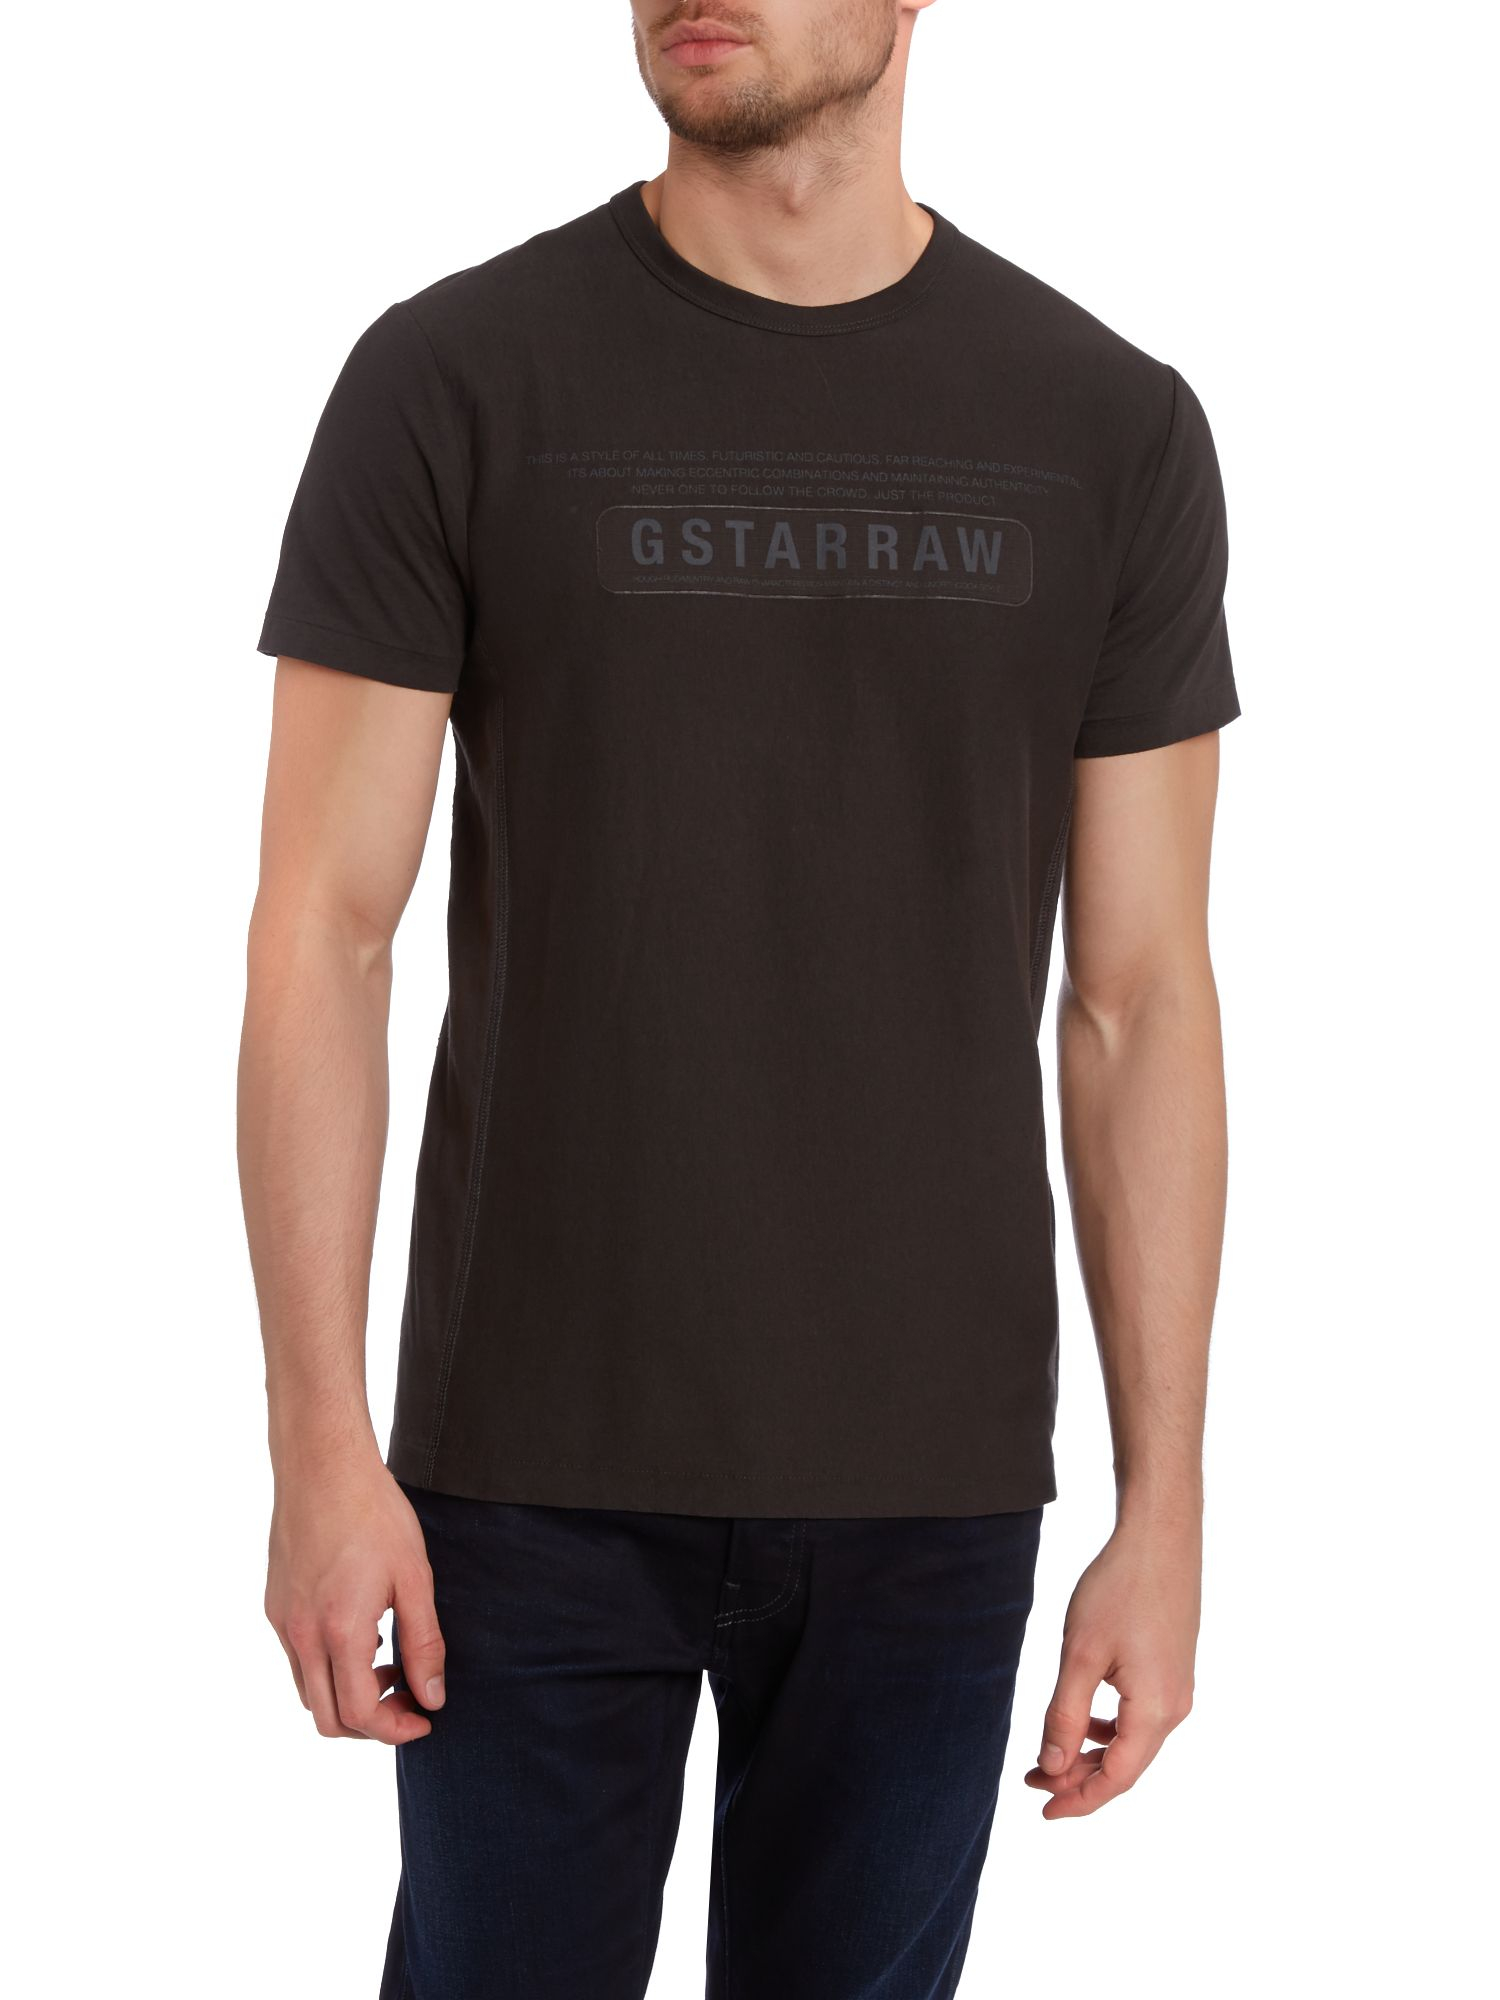 g star raw sobeck crew neck logo t shirt in black for men. Black Bedroom Furniture Sets. Home Design Ideas